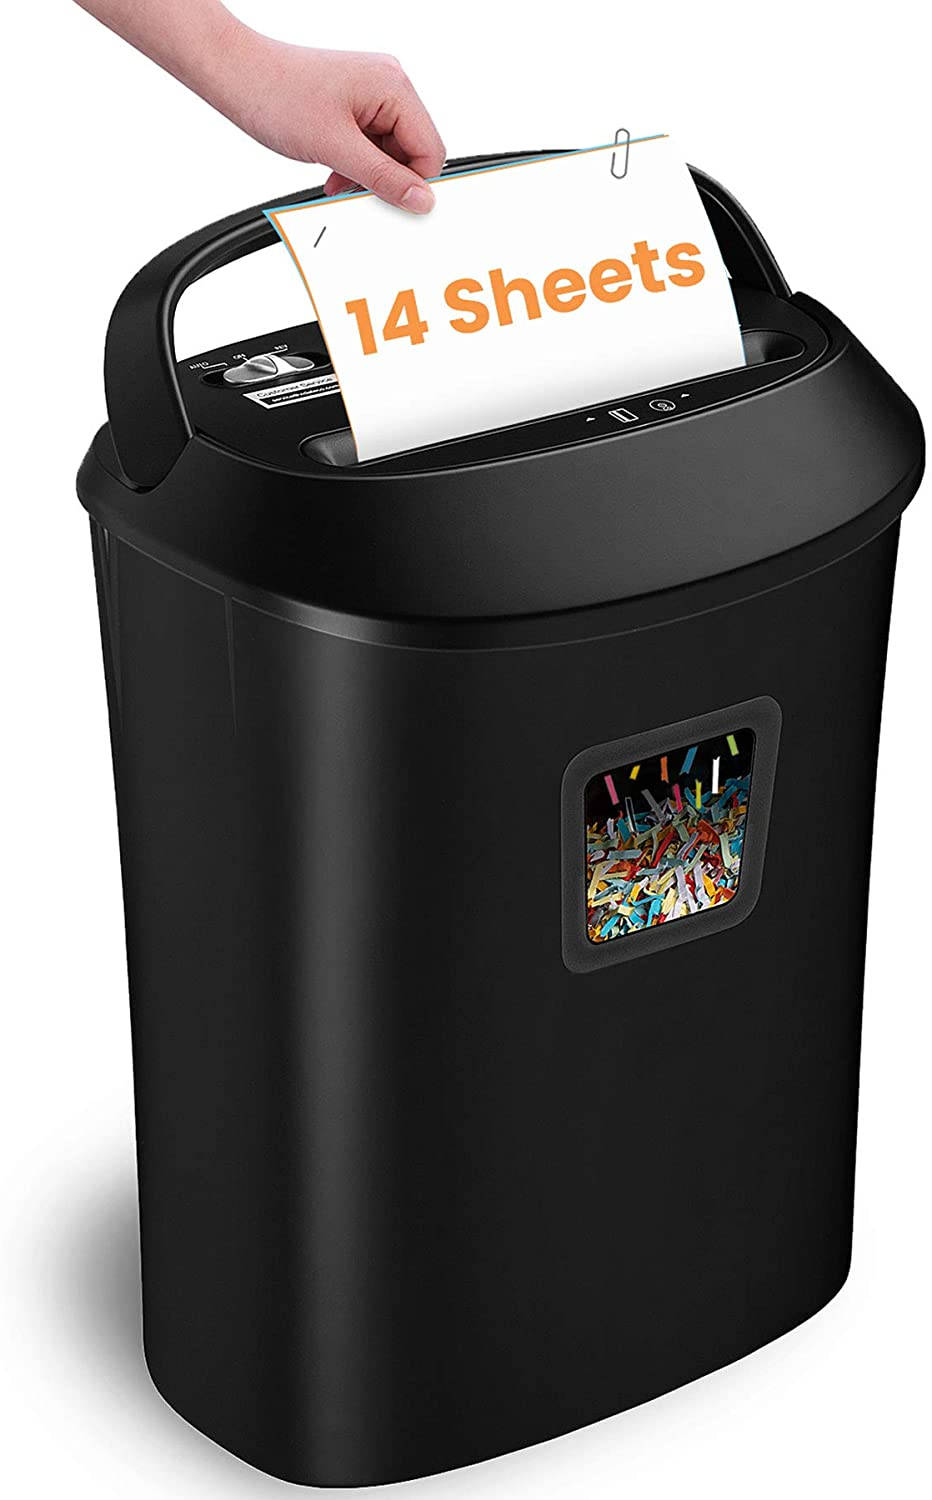 Paper Shredder, VidaTeco 14-Sheet Cross-Cut Shredder with US Patented Cutter, Also Shreds Card/CD, Heavy Duty Paper Shredder for Home Office, Durable&Fast with Jam Proof System, 6.6-Gallon Basket(ETL)